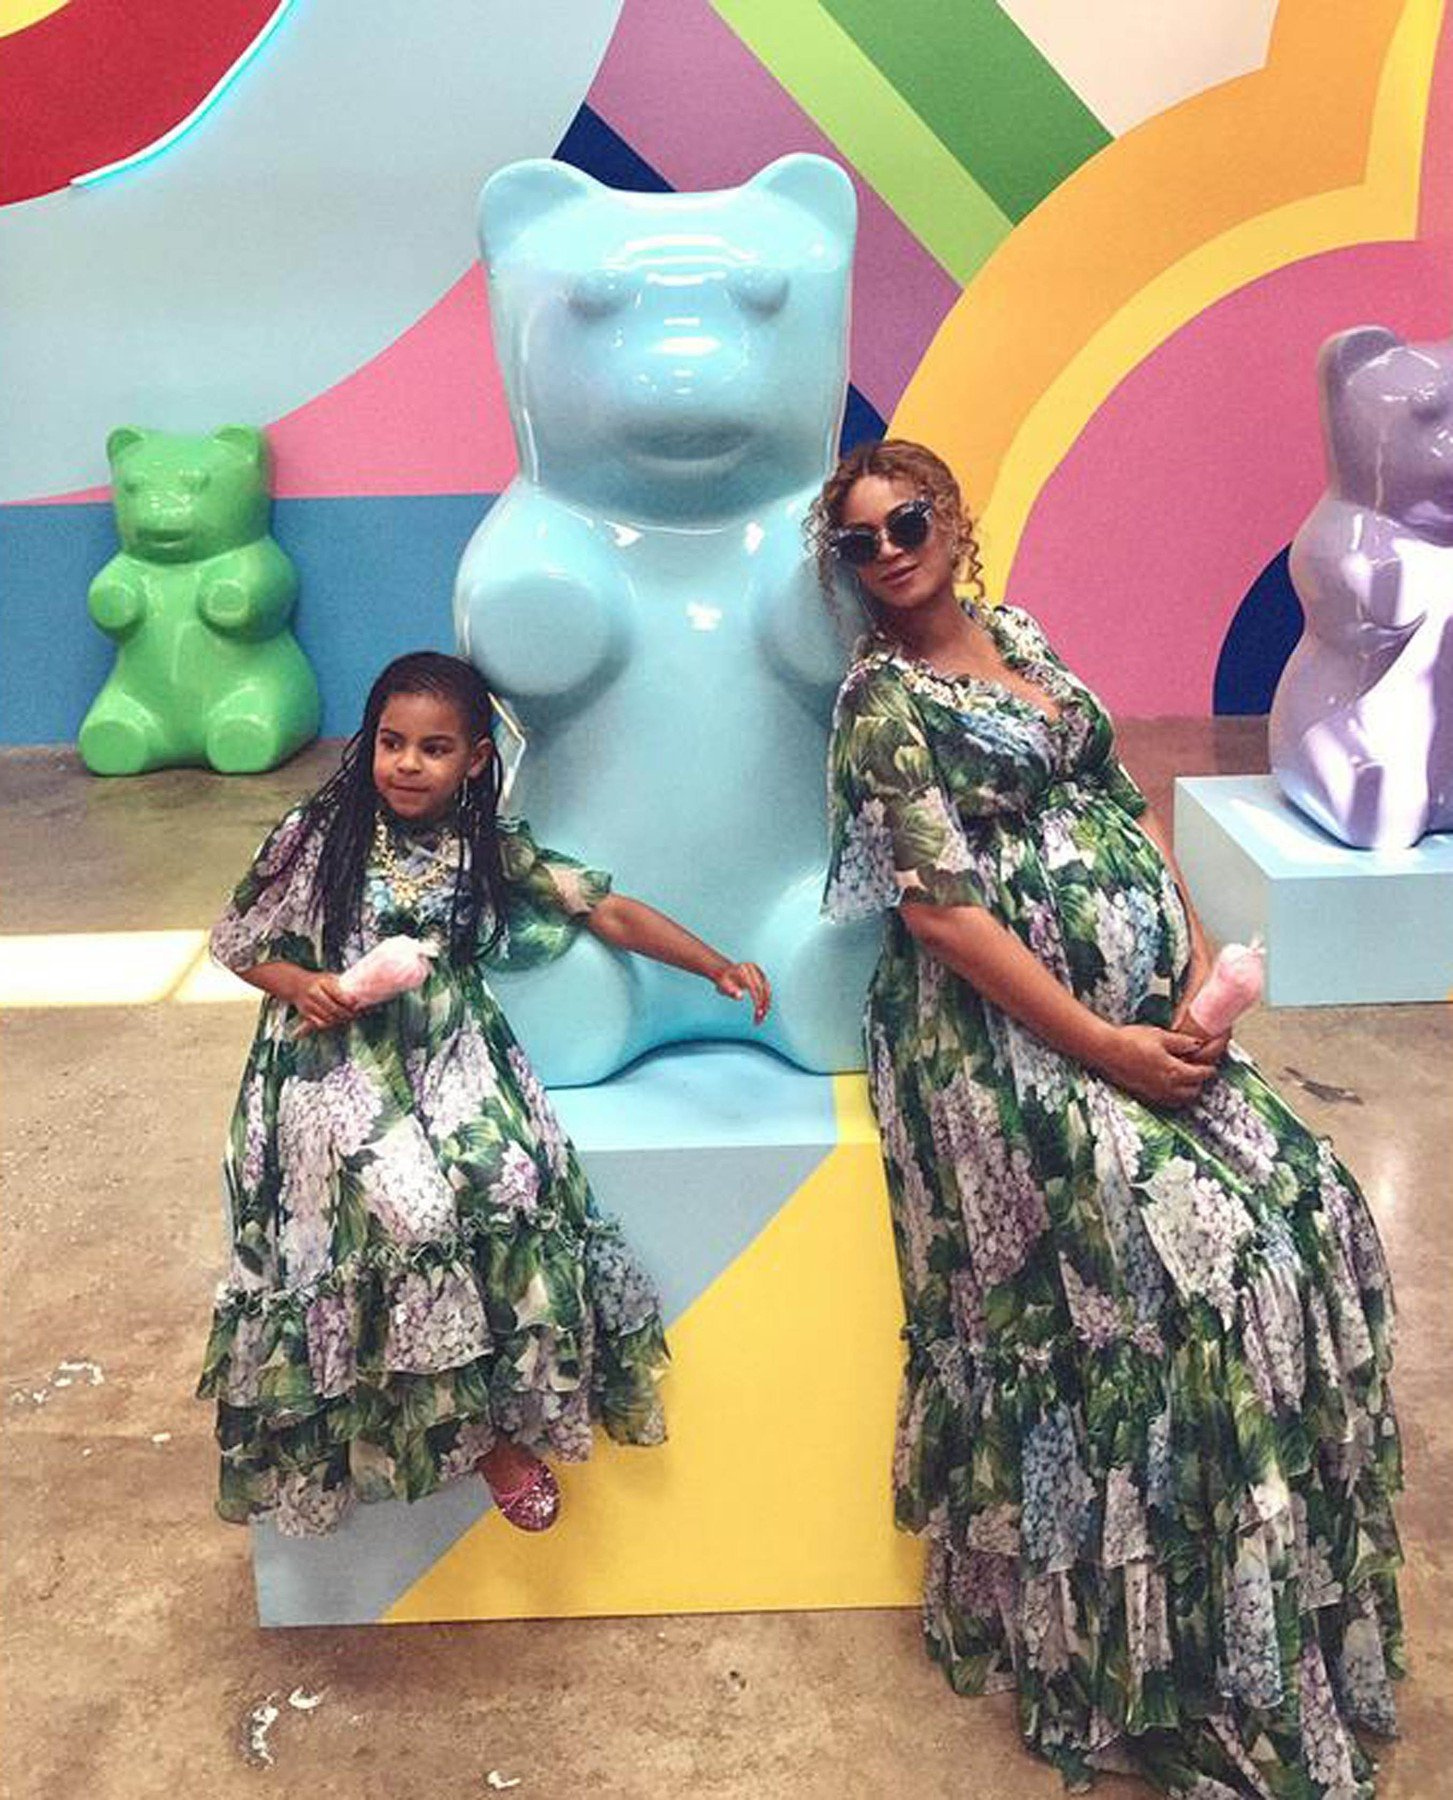 20-5-2017  Beyonce Mother's Day selfies with her family   Pictured: Beyonce Blue Ivy, Image: 332932738, License: Rights-managed, Restrictions: , Model Release: no, Credit line: Profimedia, Planet